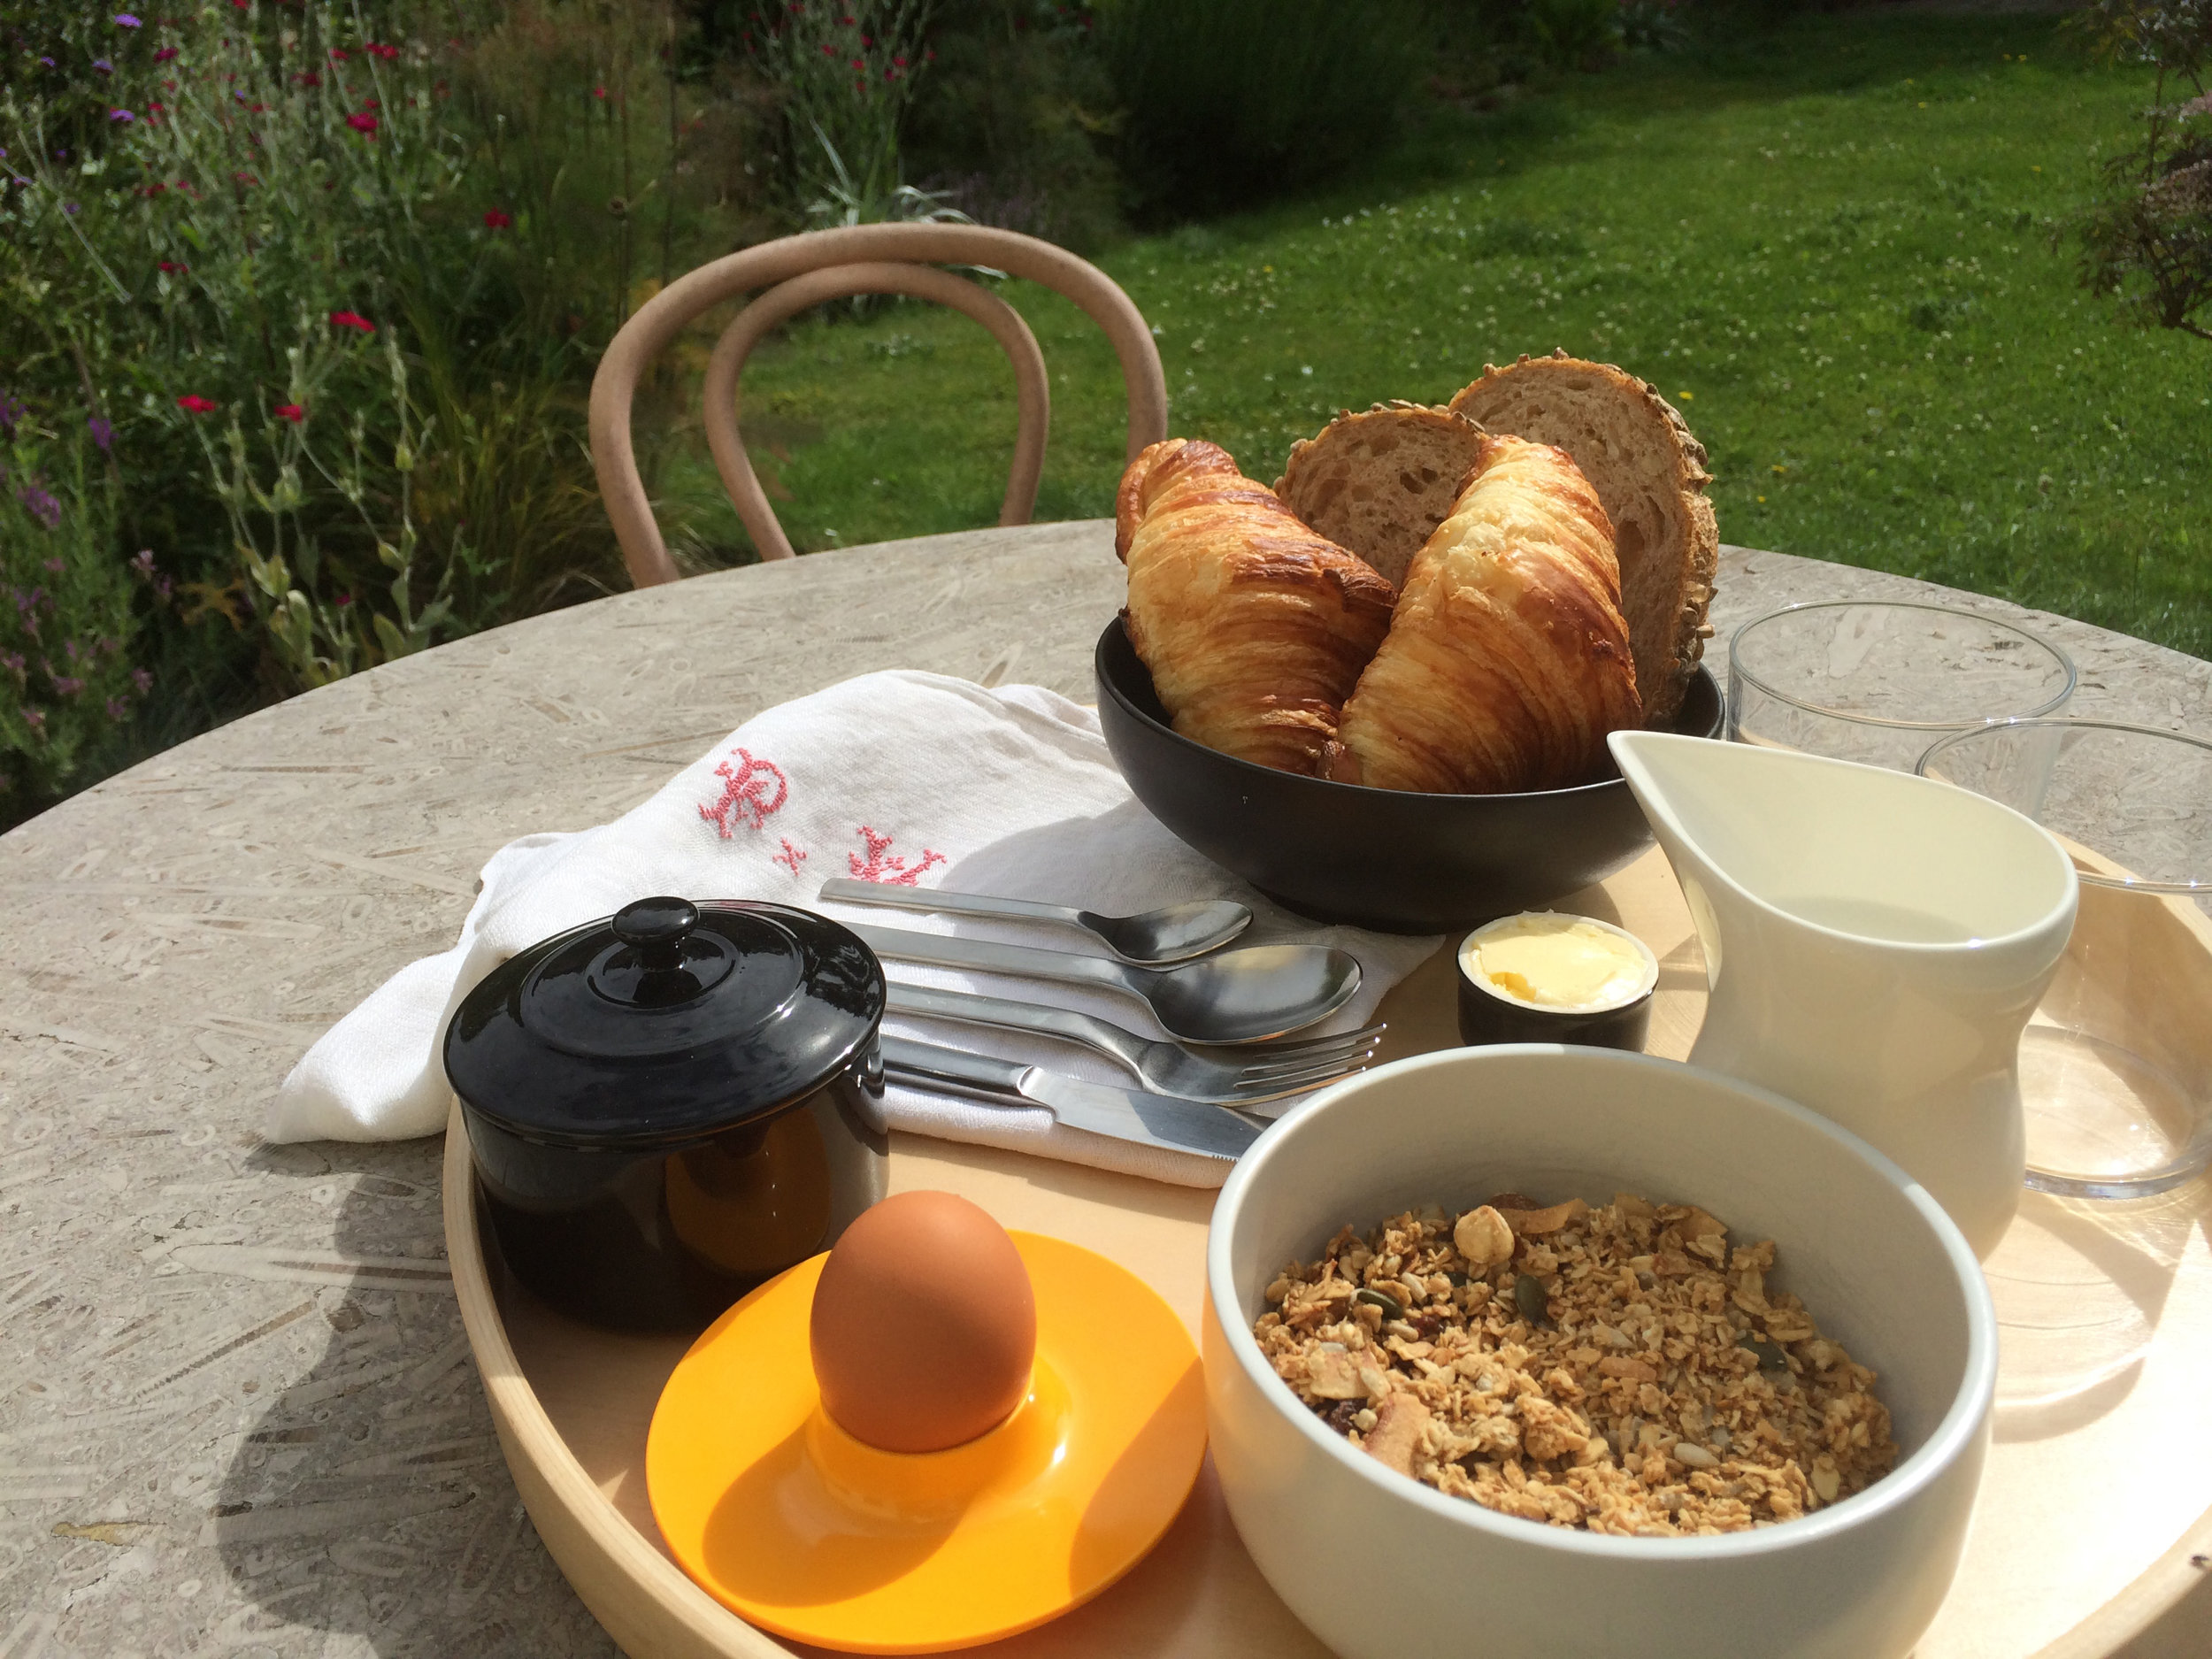 Breakfasts are served on the garden terrace when sunny and warm